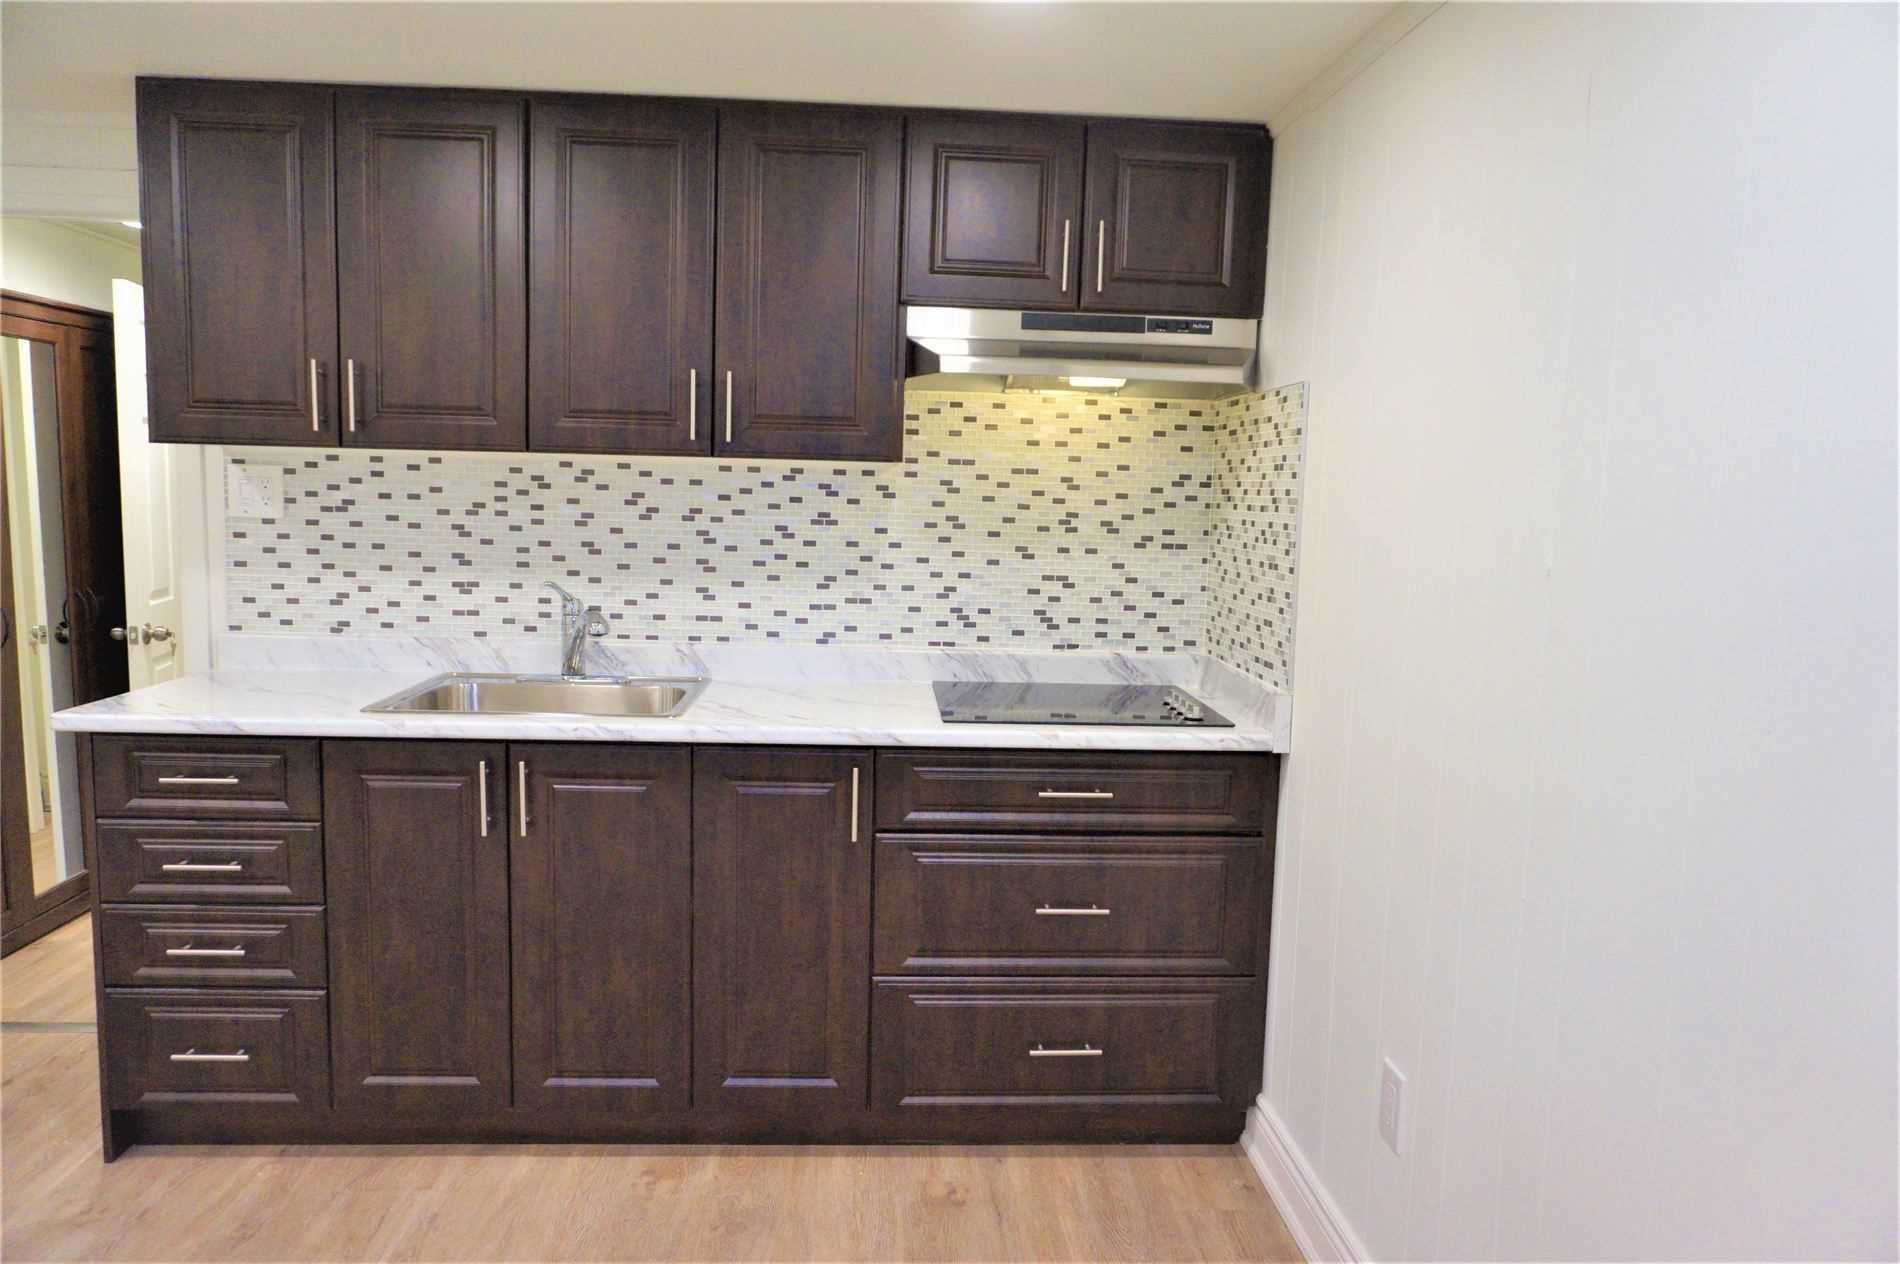 Image 1 of 10 showing inside of 1 Bedroom Detached Bungalow for Lease at 22 Otonabee Ave, Toronto M2M2S3